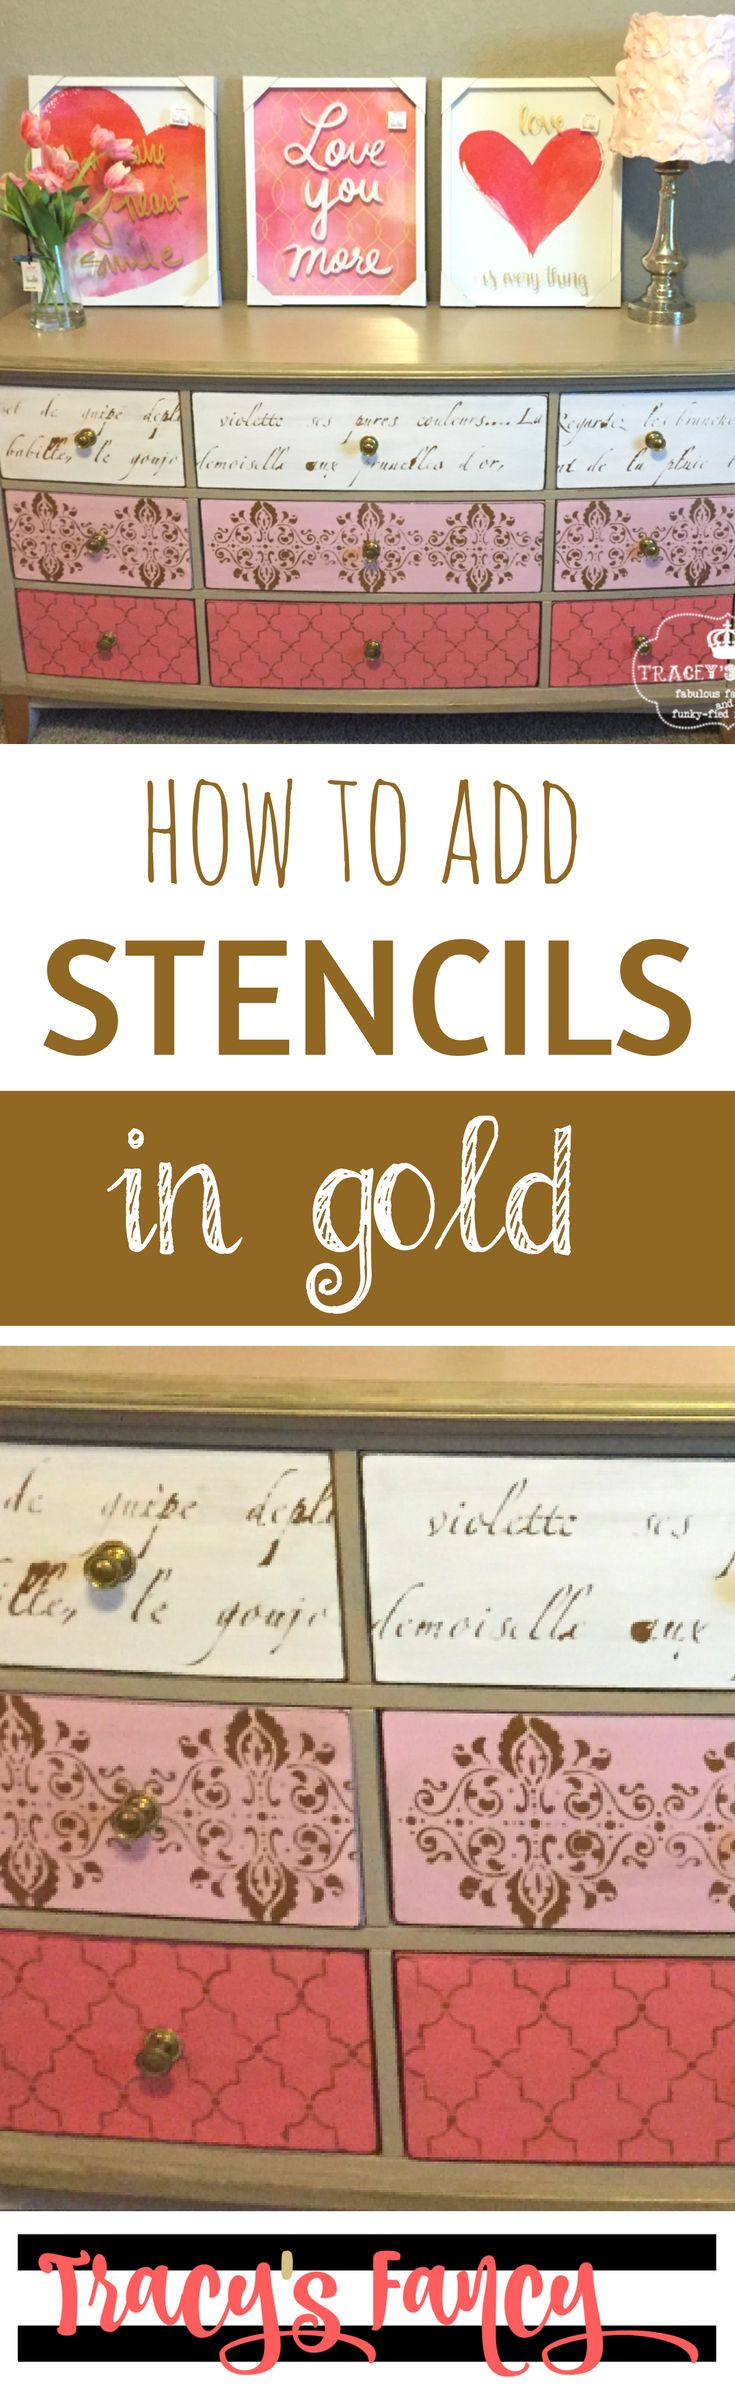 Mix Patterns on a Stenciled Dresser & How to Add Stencils in Gold to Furnityue   DIY Furniture and Furniture Painting Tips by Tracey's Fancy